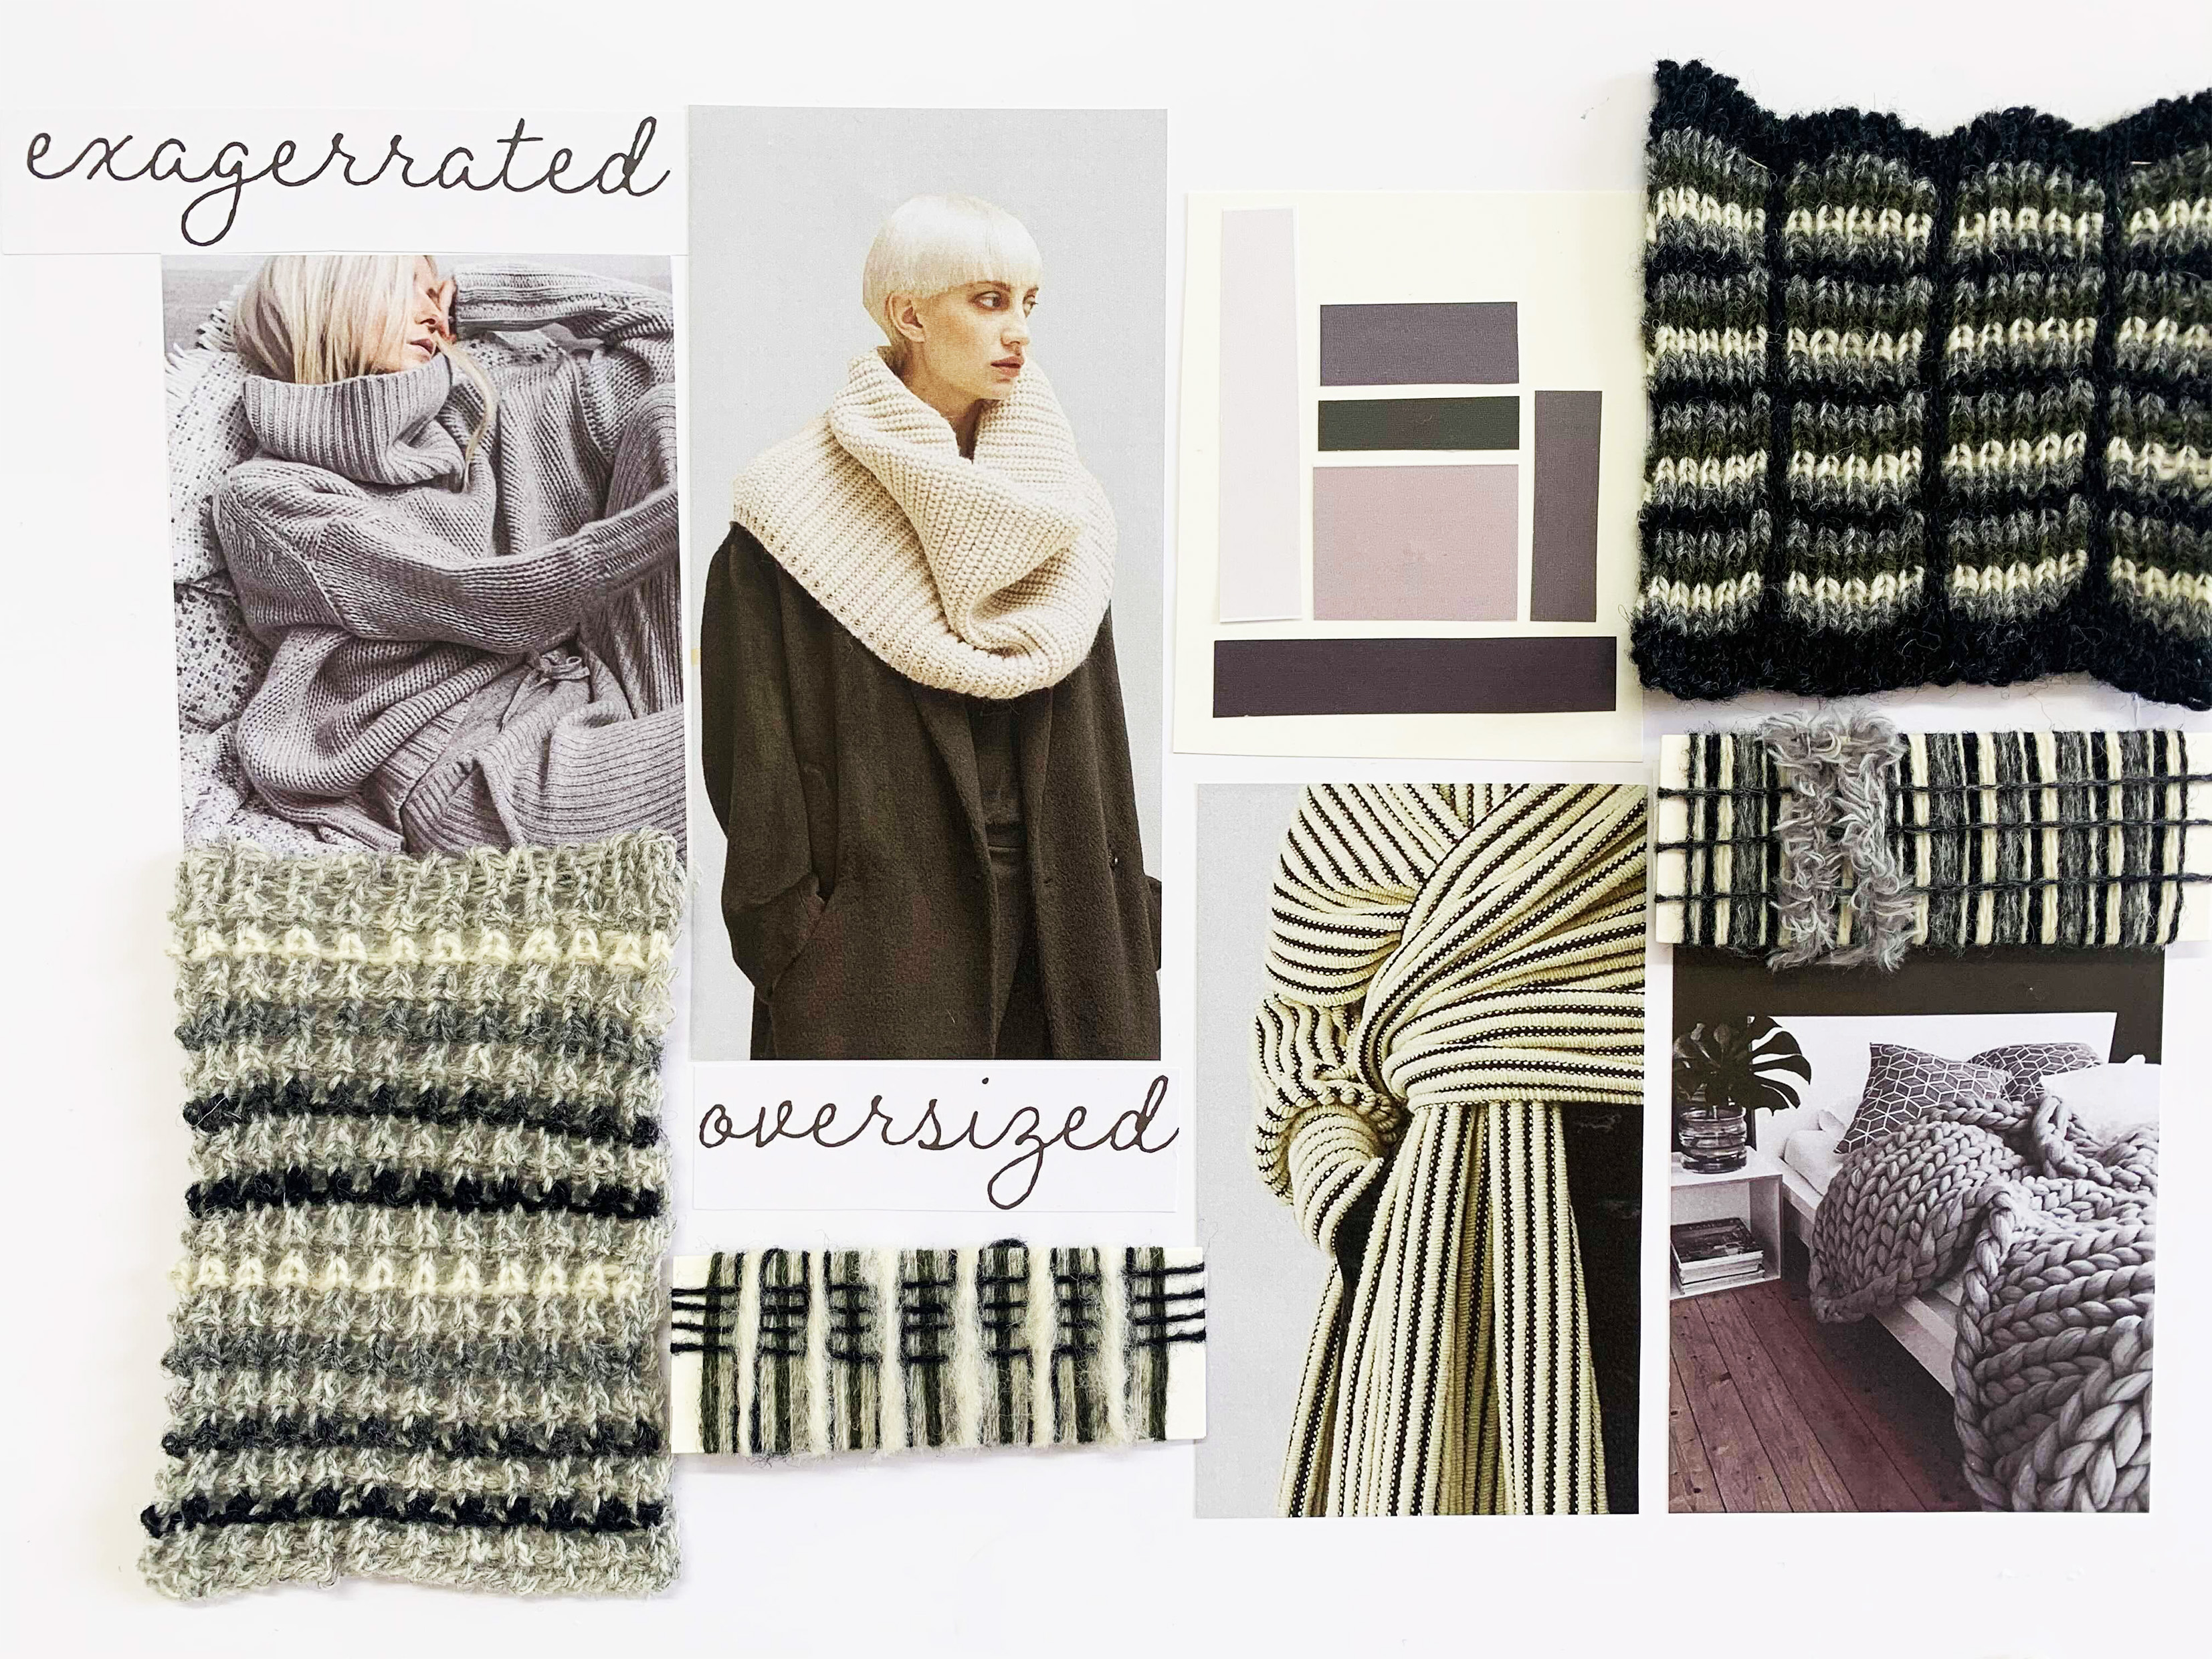 Lifestyle Fabrics: Wearable Interior Fabrics for the Wellbeing Focused Indoor-Based Millennial